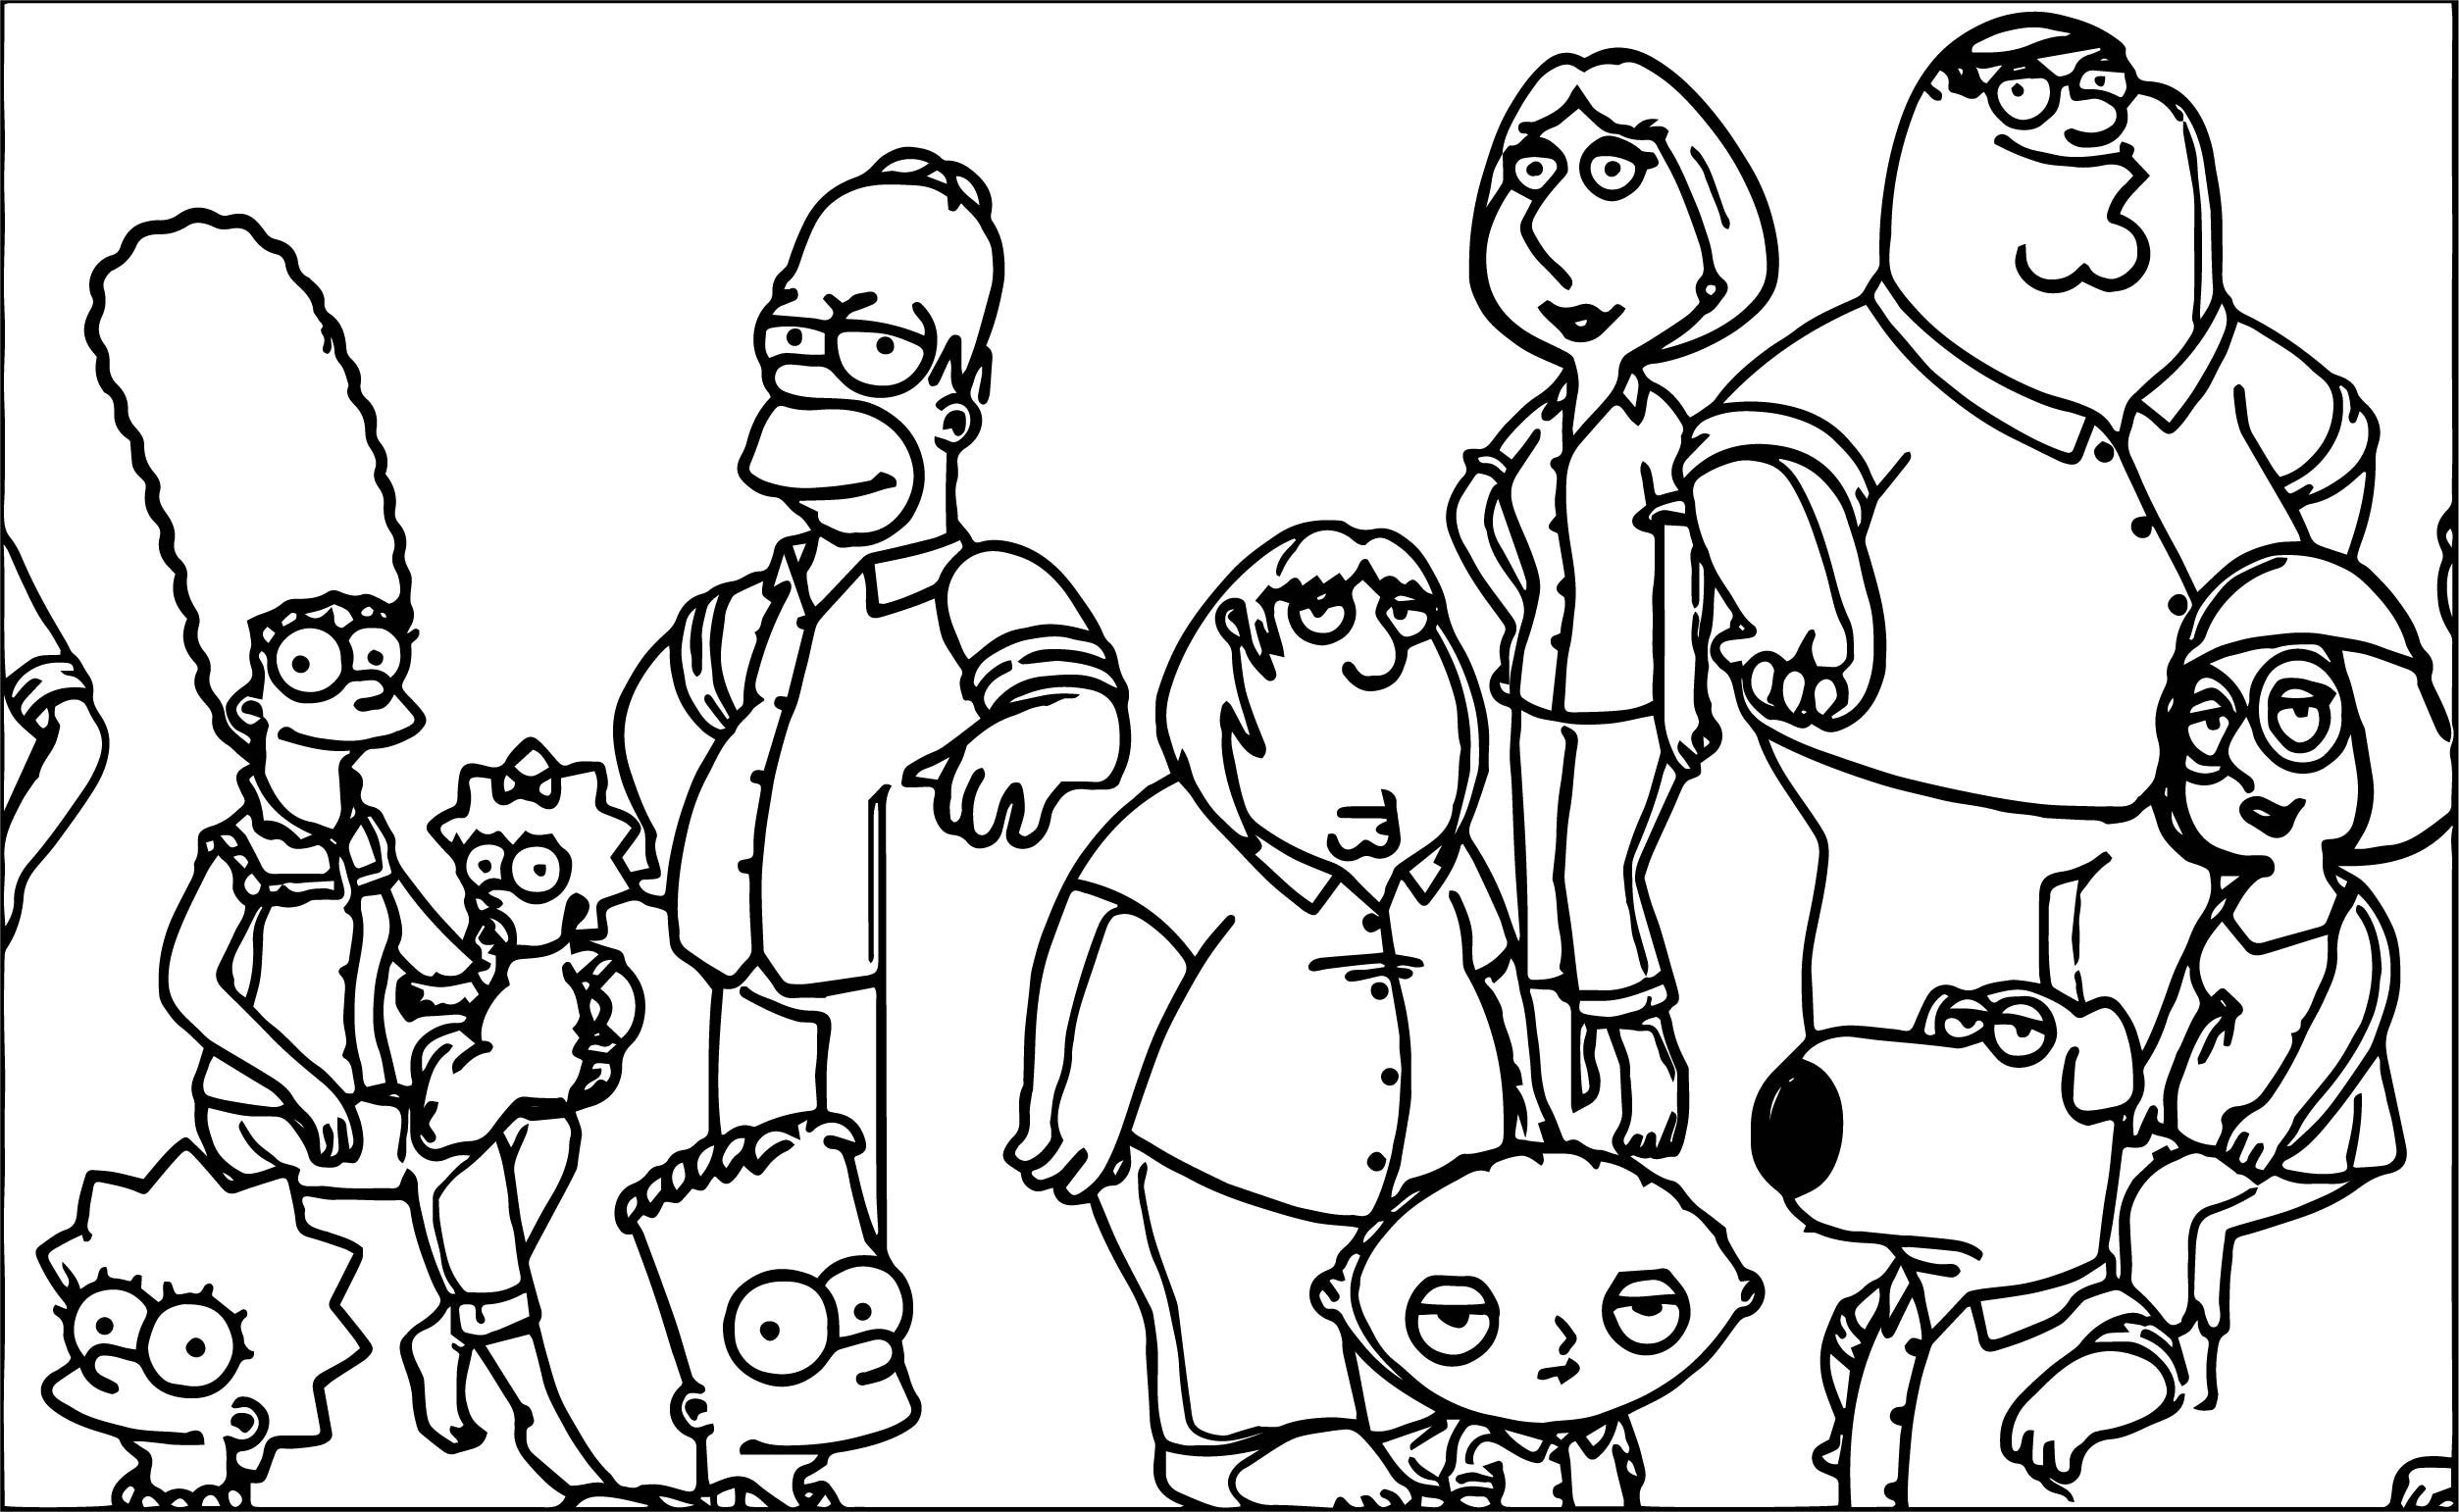 Nice Family Guy And The Simpsons Crossover Coloring Page Coloring Pages The Simpsons Bible Coloring Sheets